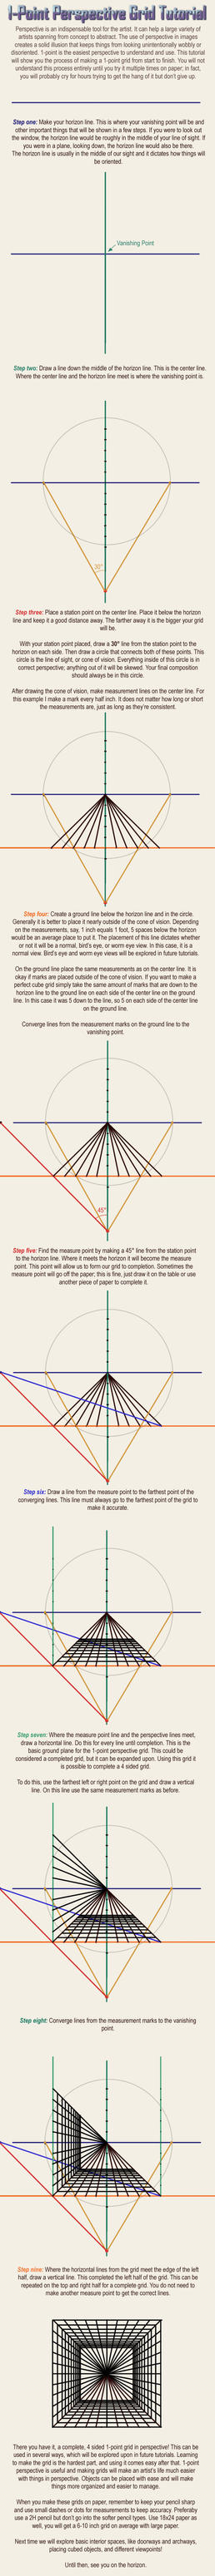 1-Point Perspective Tutorial by dragonictoni